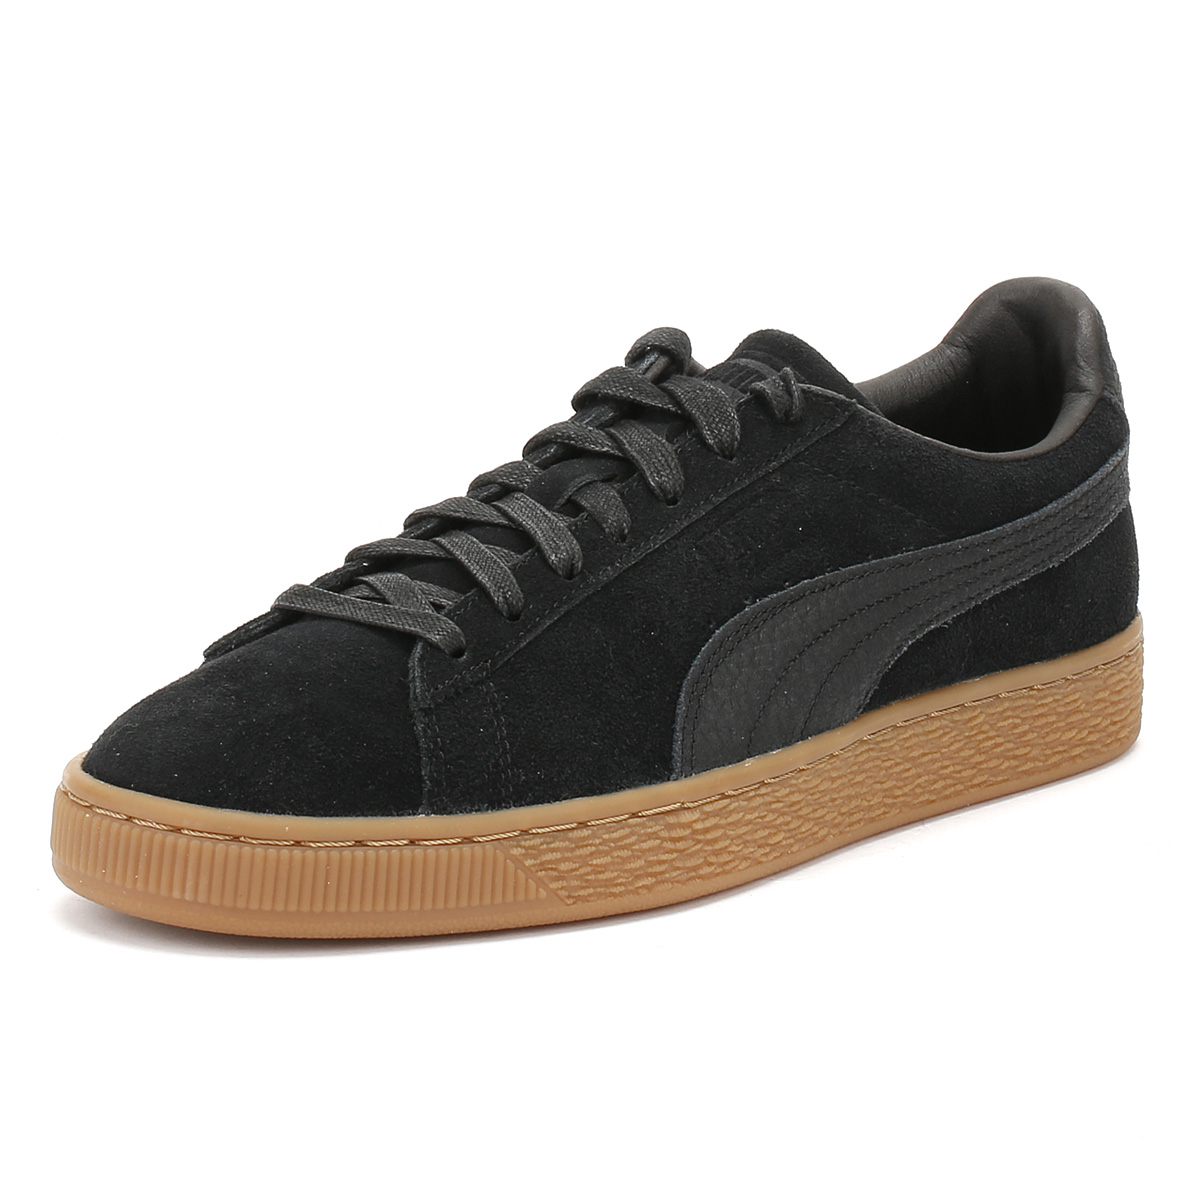 Puma Suede Classic Unisex Brown Suede Casual Trainers Lace-up Genuine Shoes